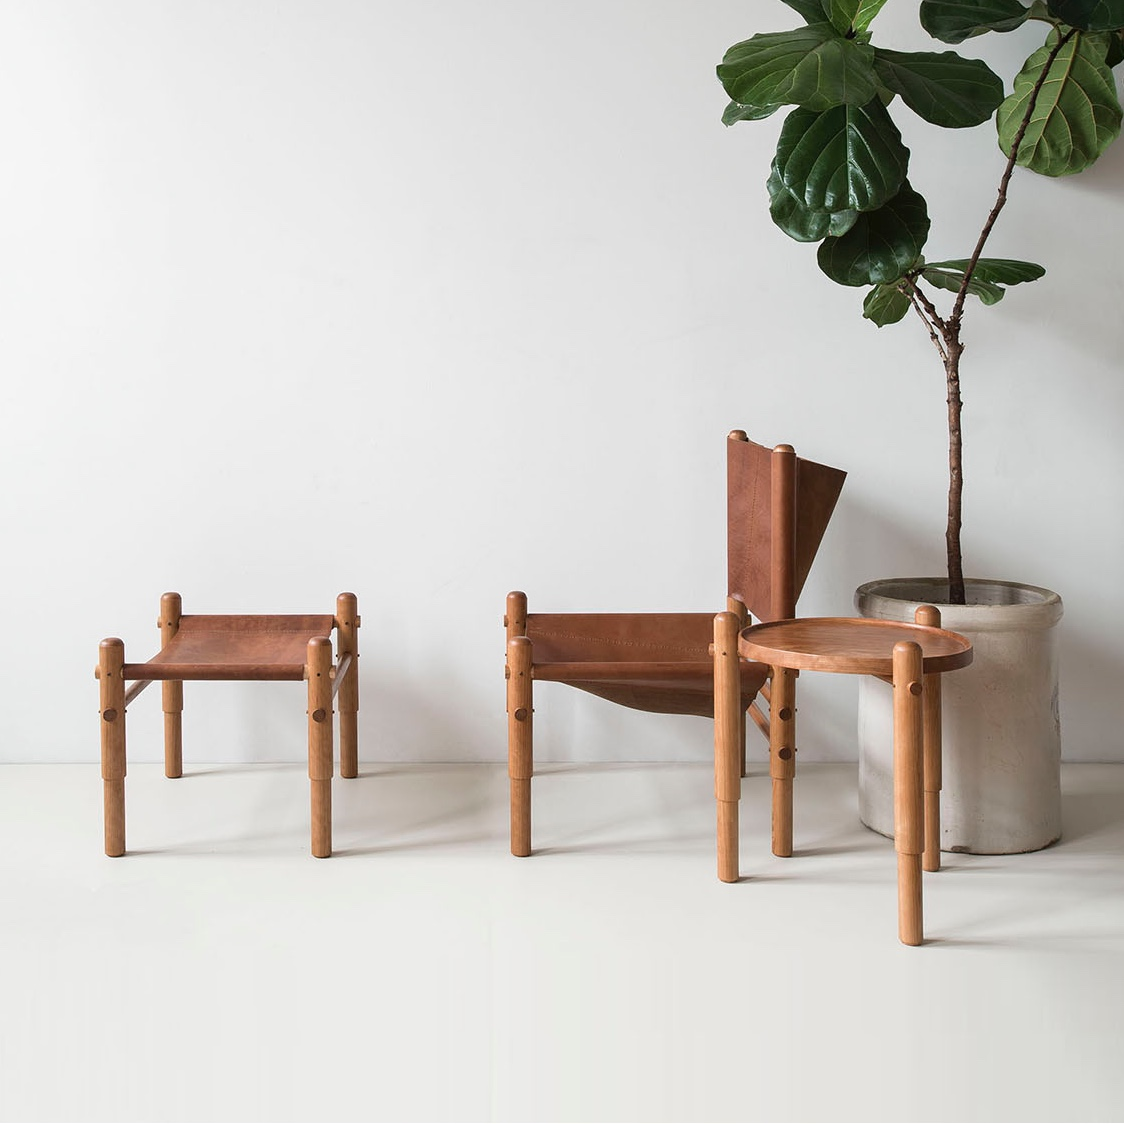 L ro R: Sling Chair, Sling Ottoman and Spool Side Table. Wood and leather. Clean, simple and unique.